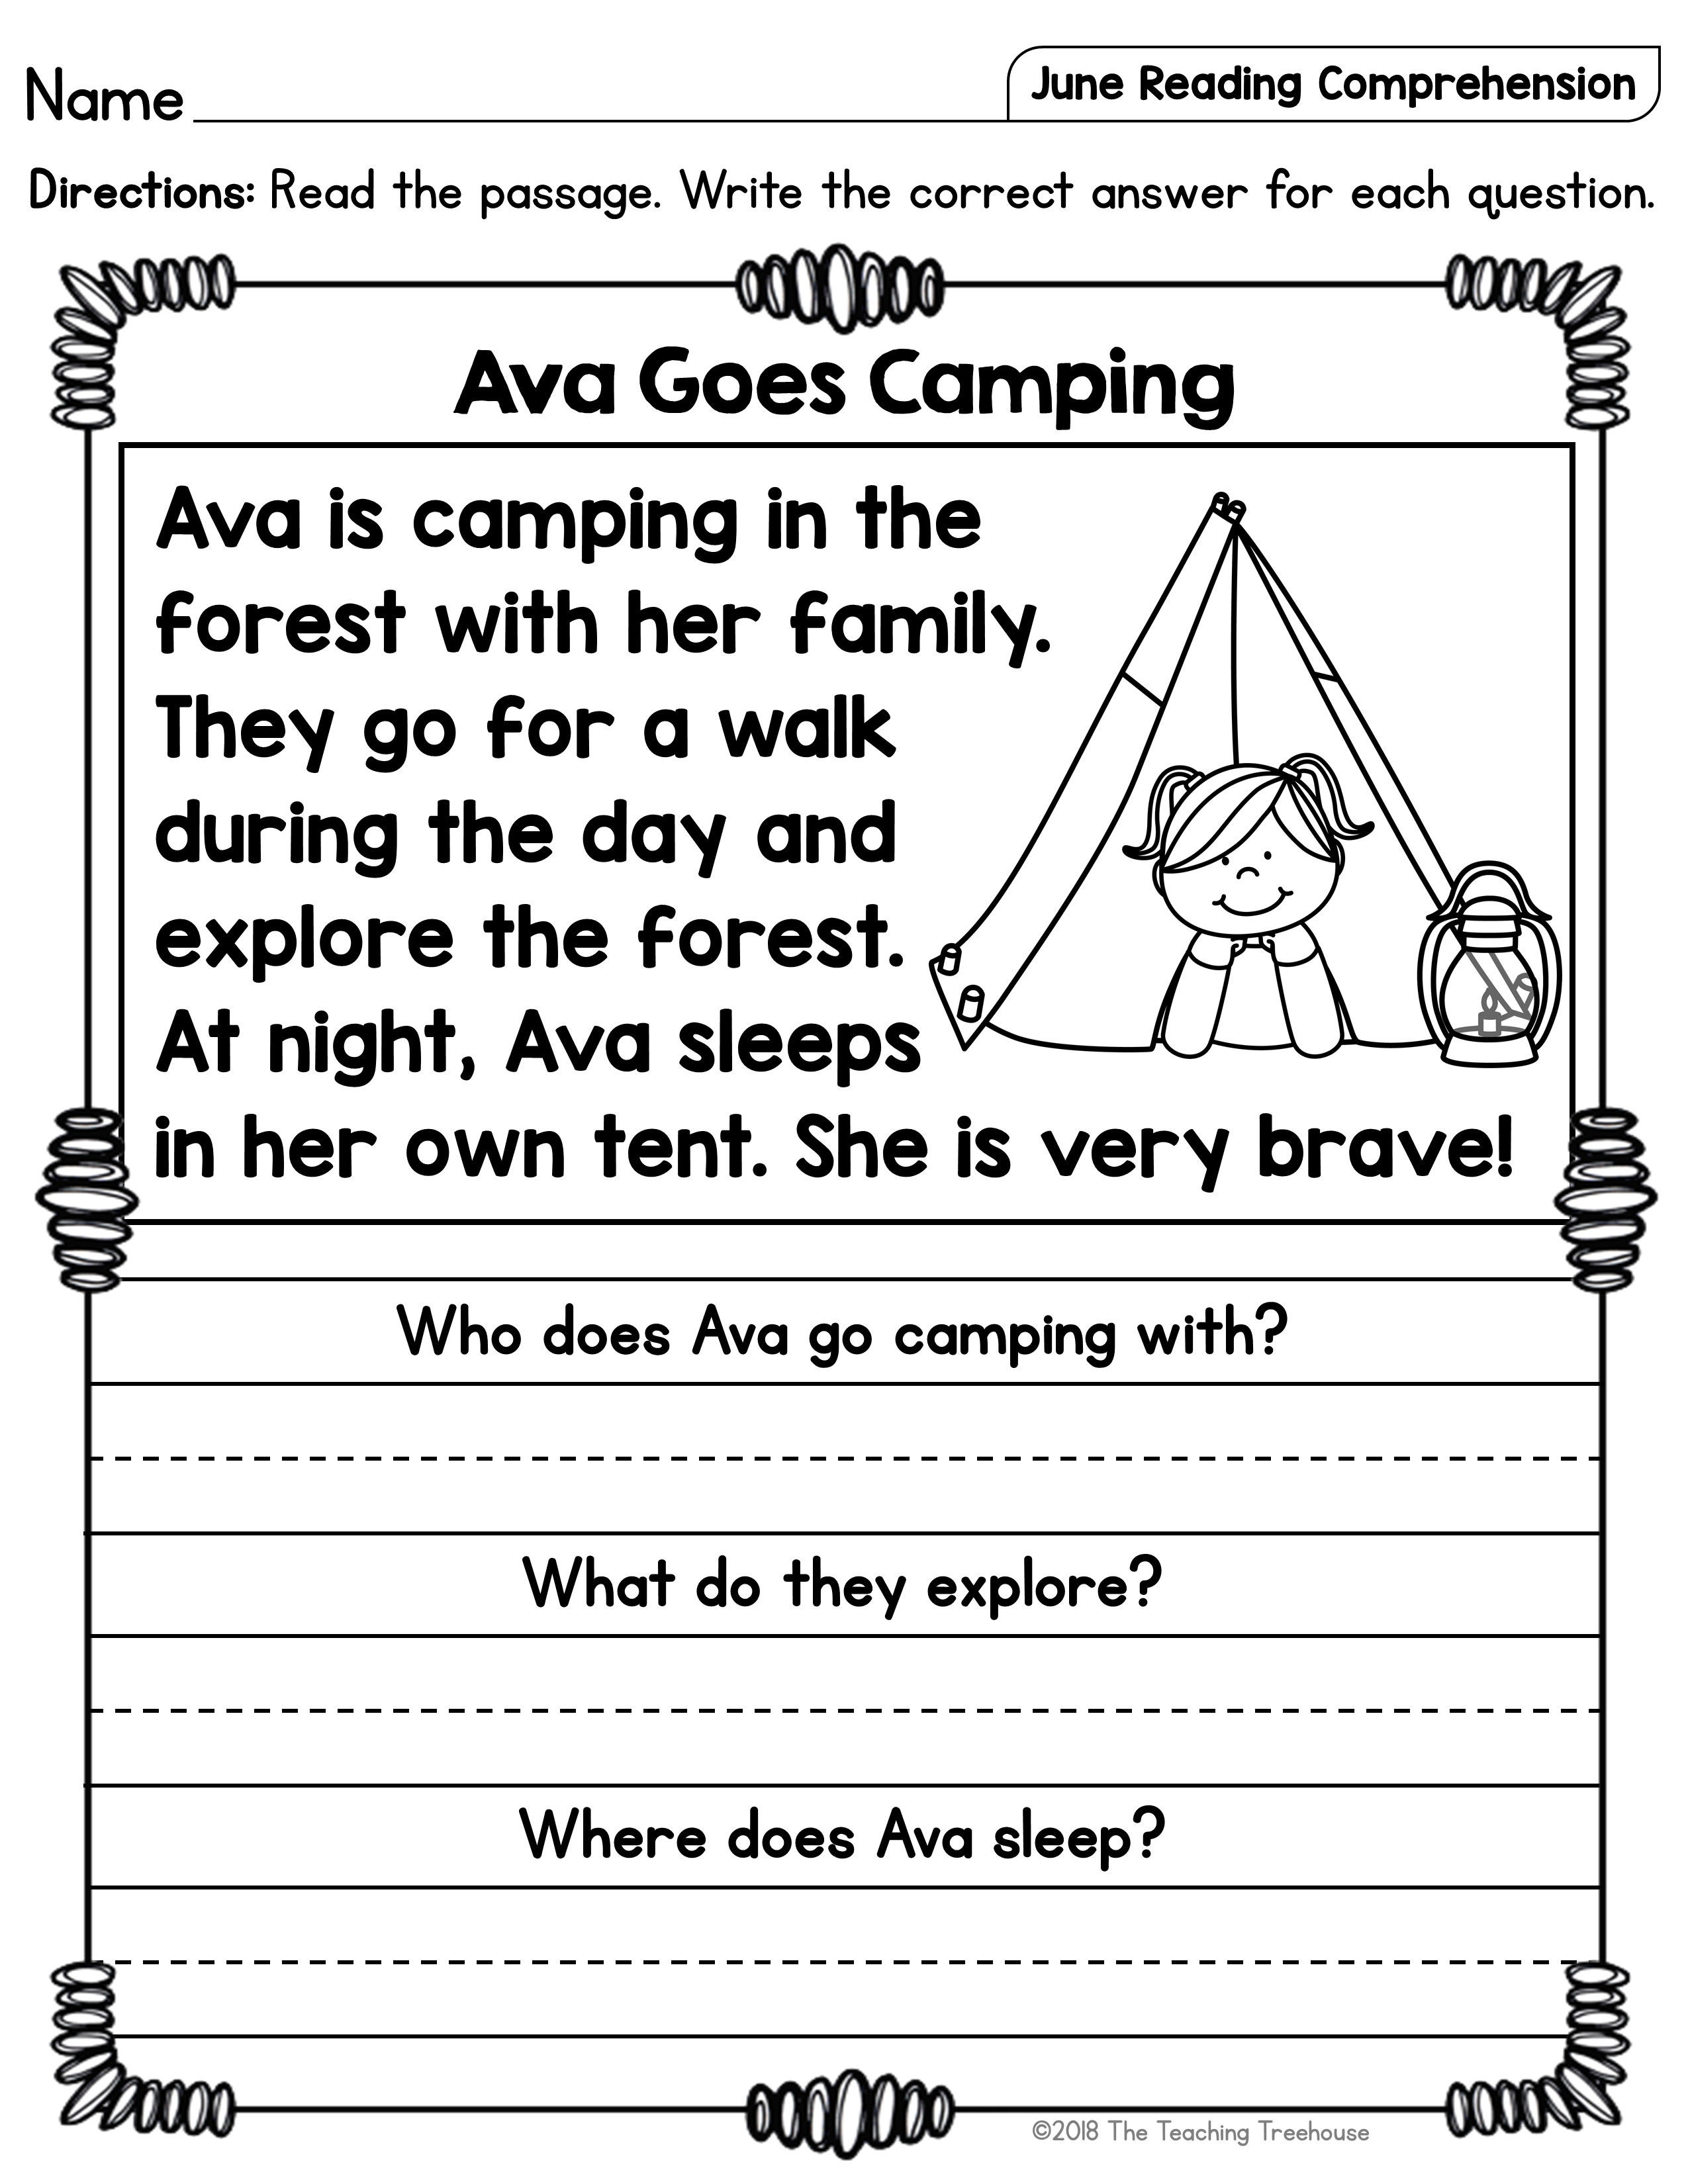 small resolution of June Reading Comprehension Passages for Kindergarten and First Grade    Reading comprehension worksheets